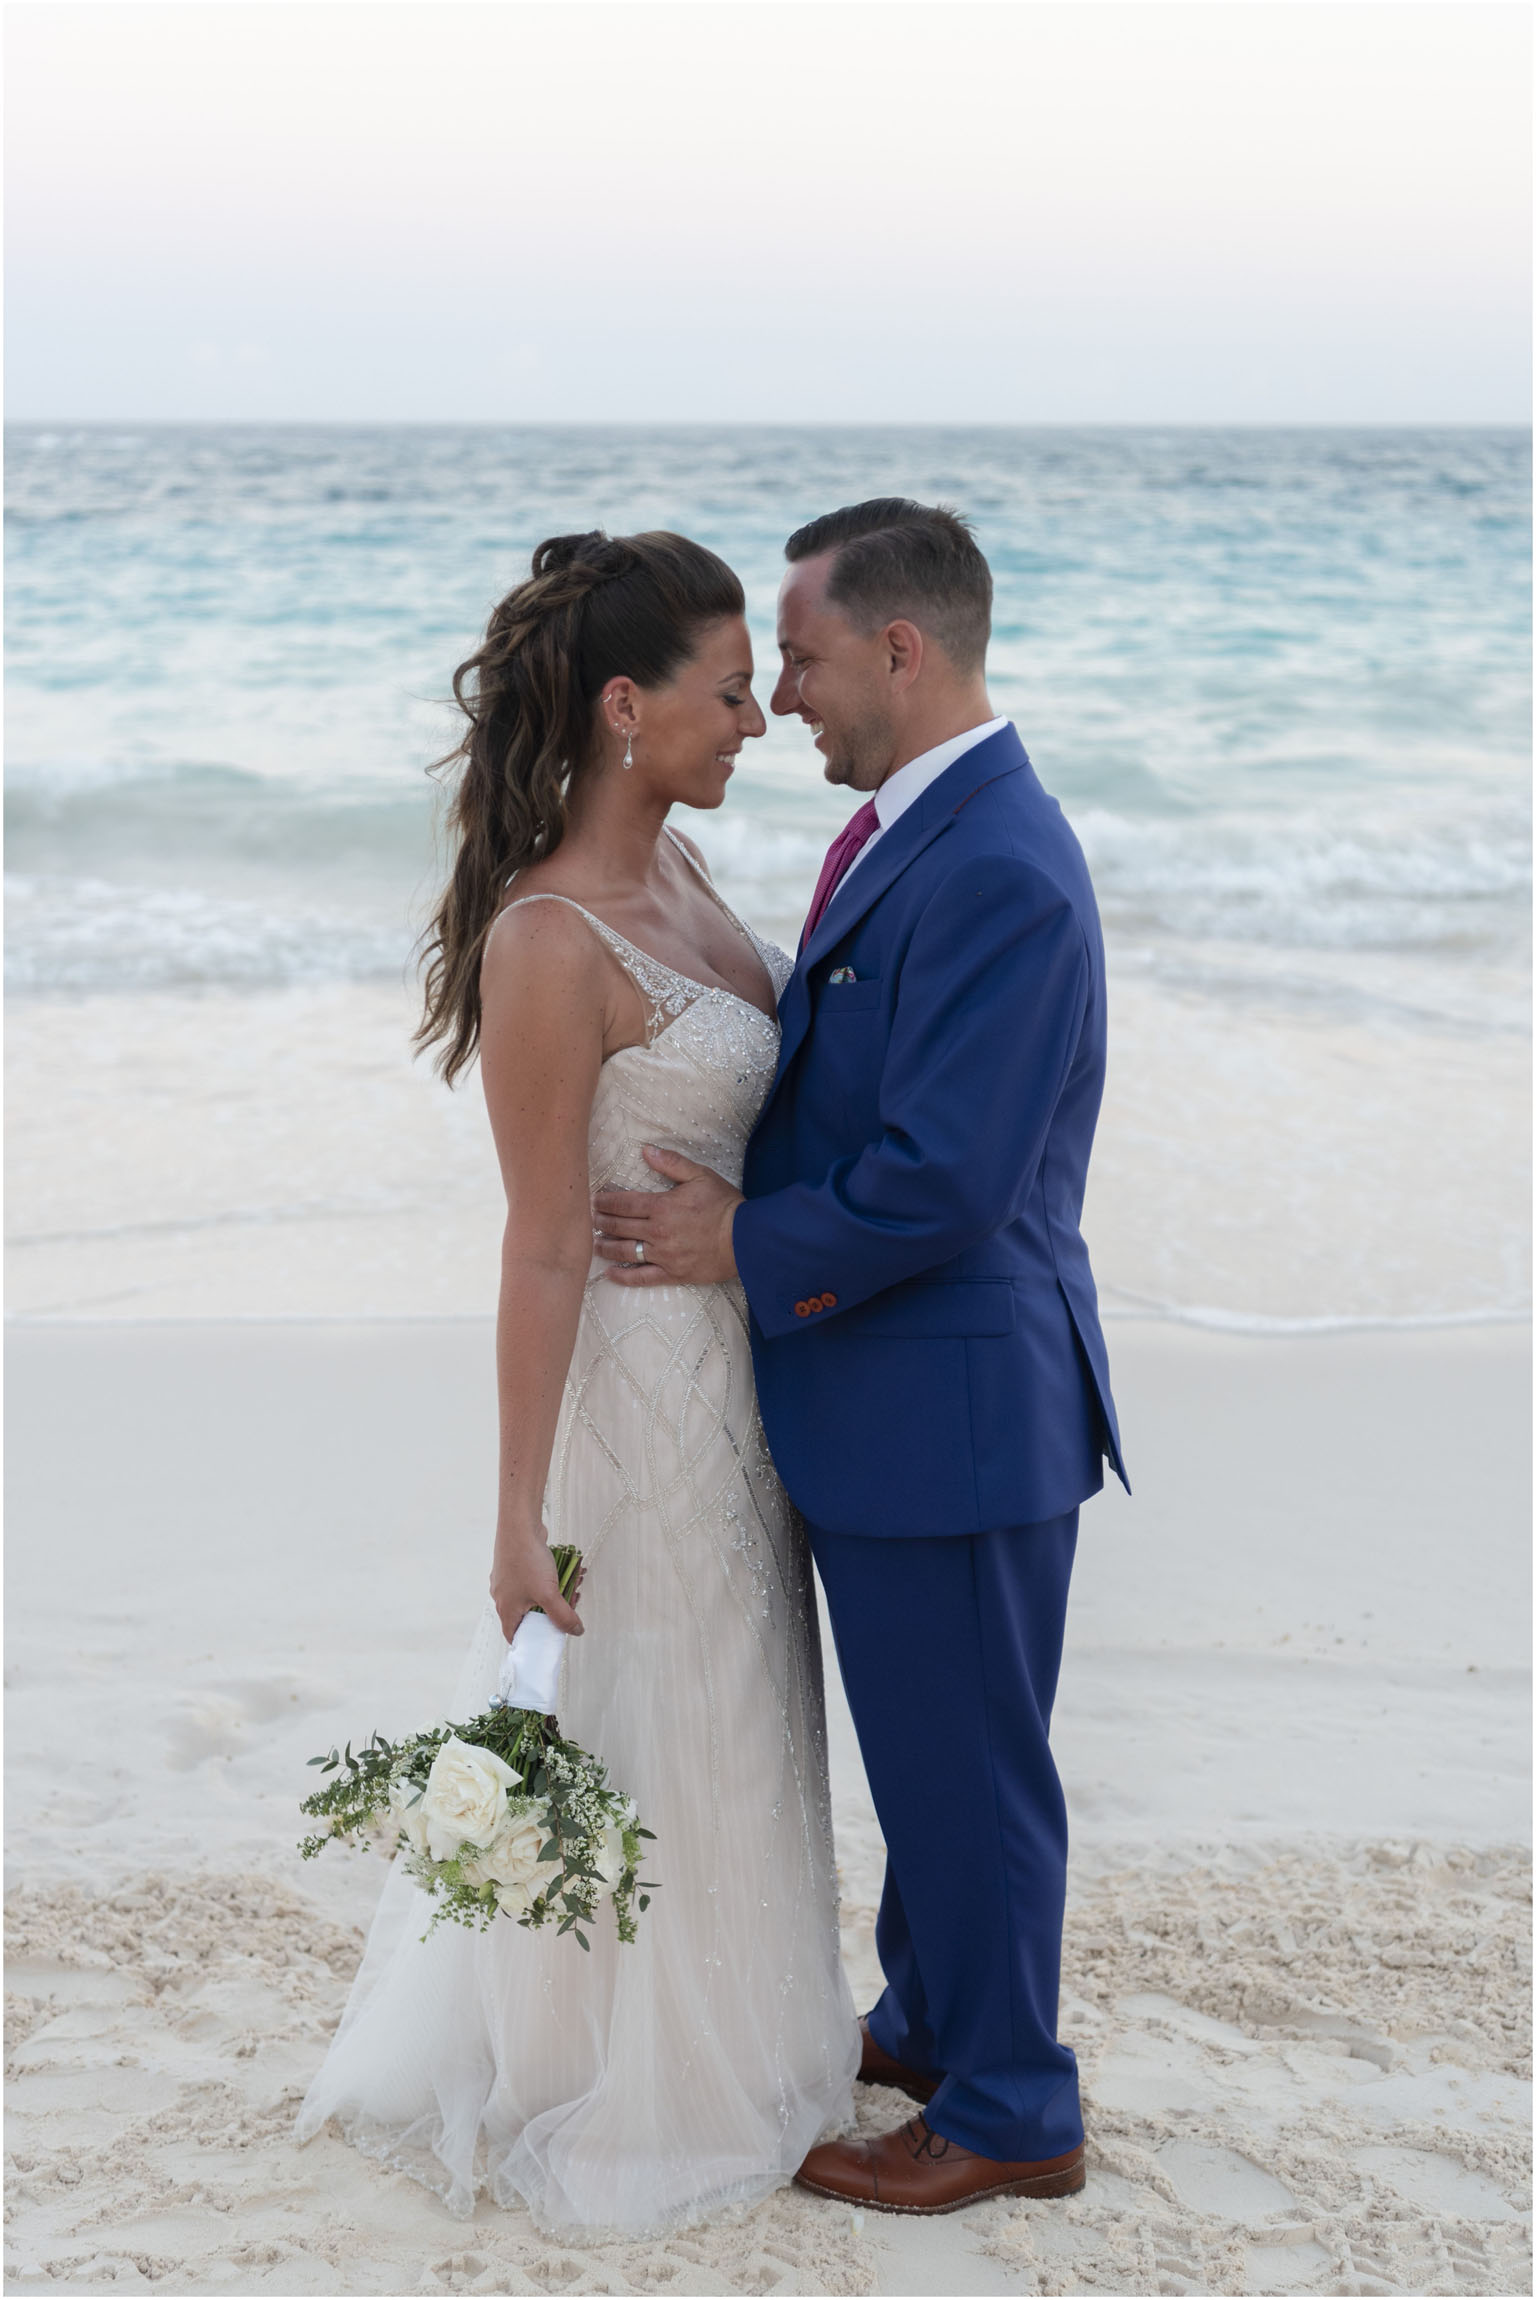 ©FianderFoto_Catherine_Kenny_Coral+Beach+Wedding_192.jpg